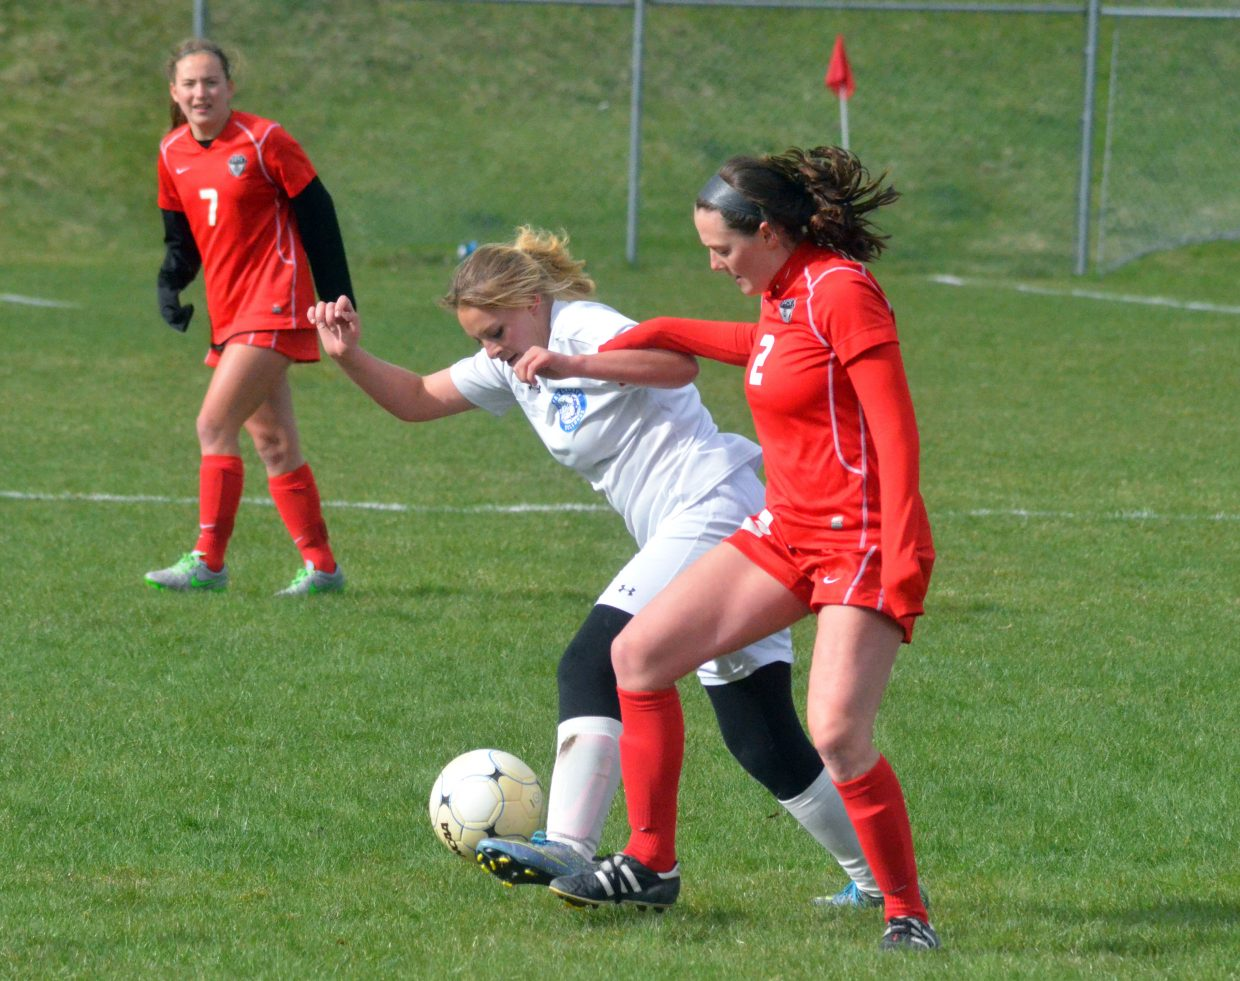 Moffat County High School's Sydni Tripp stays contentious against Steamboat Springs' Jordan Floyd (2) during the Bulldogs' Wednesday home game against the Sailors. Steamboat won, 10-0, improving to 10-1 overall, while MCHS is now 0-12 this season.